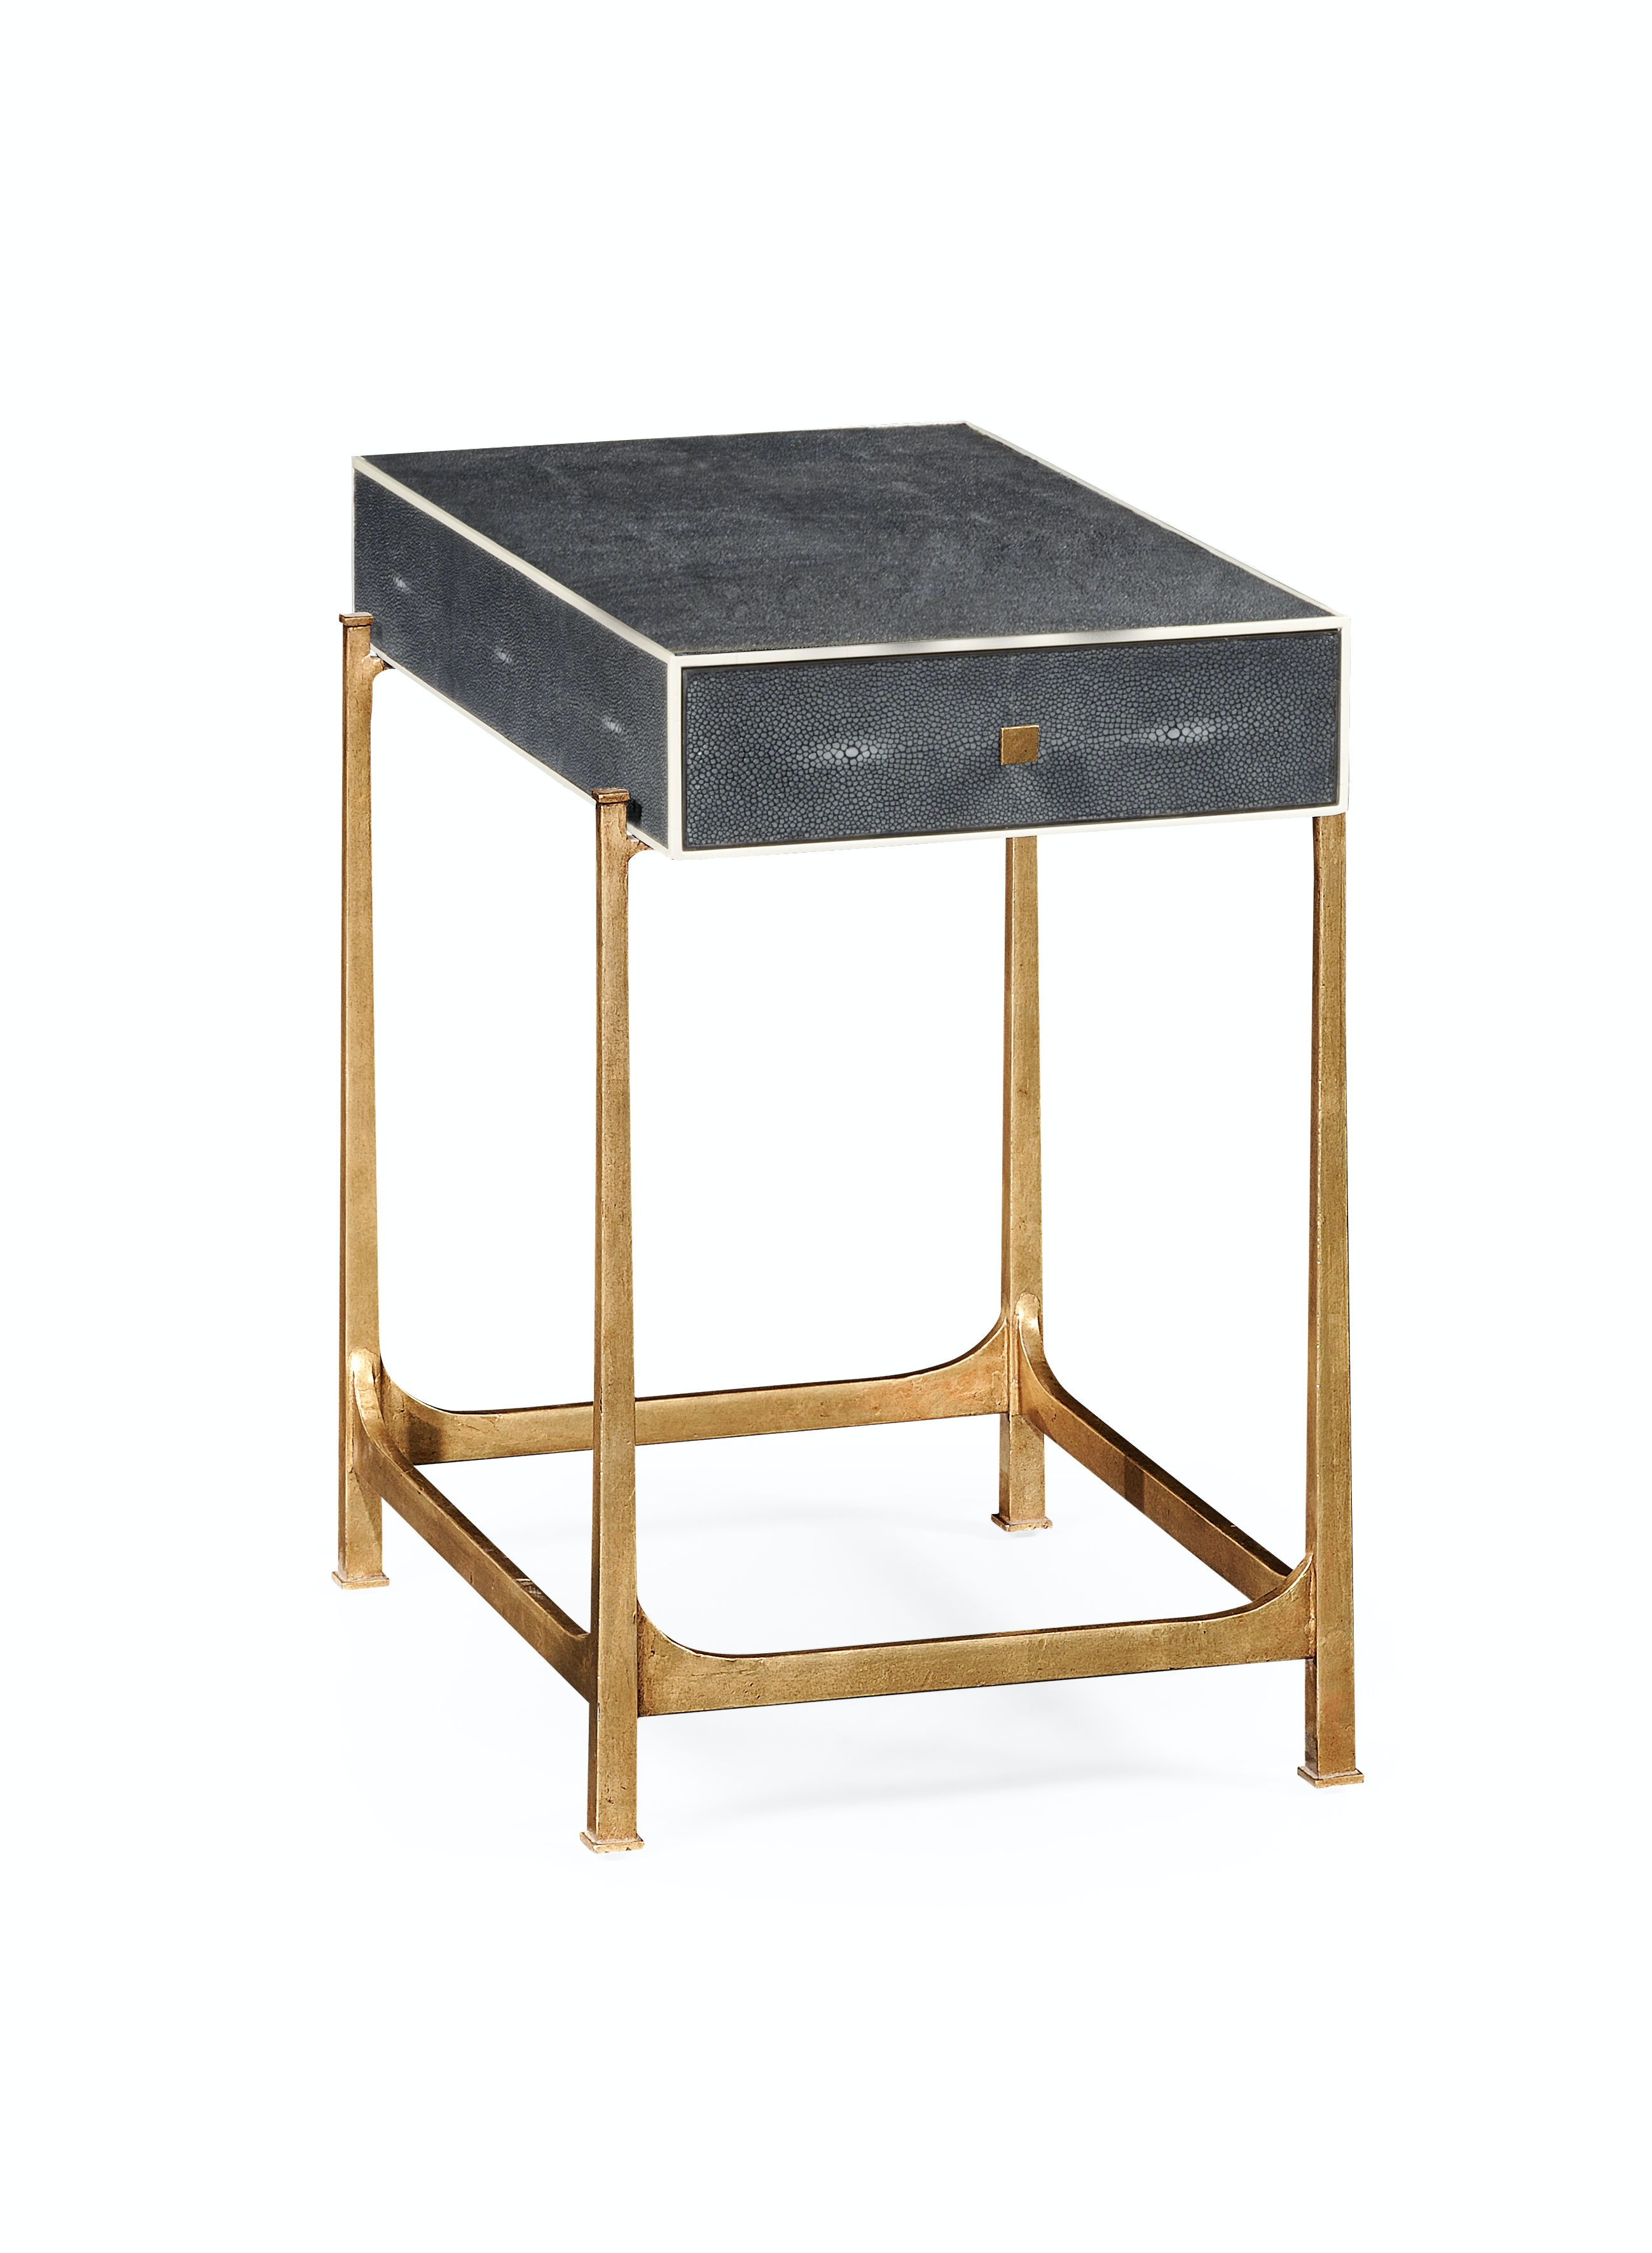 Charmant Jonathan Charles Anthracite Faux Shagreen U0026 Gilded Iron Side Table  QJ494256GSGA From Walter E. Smithe